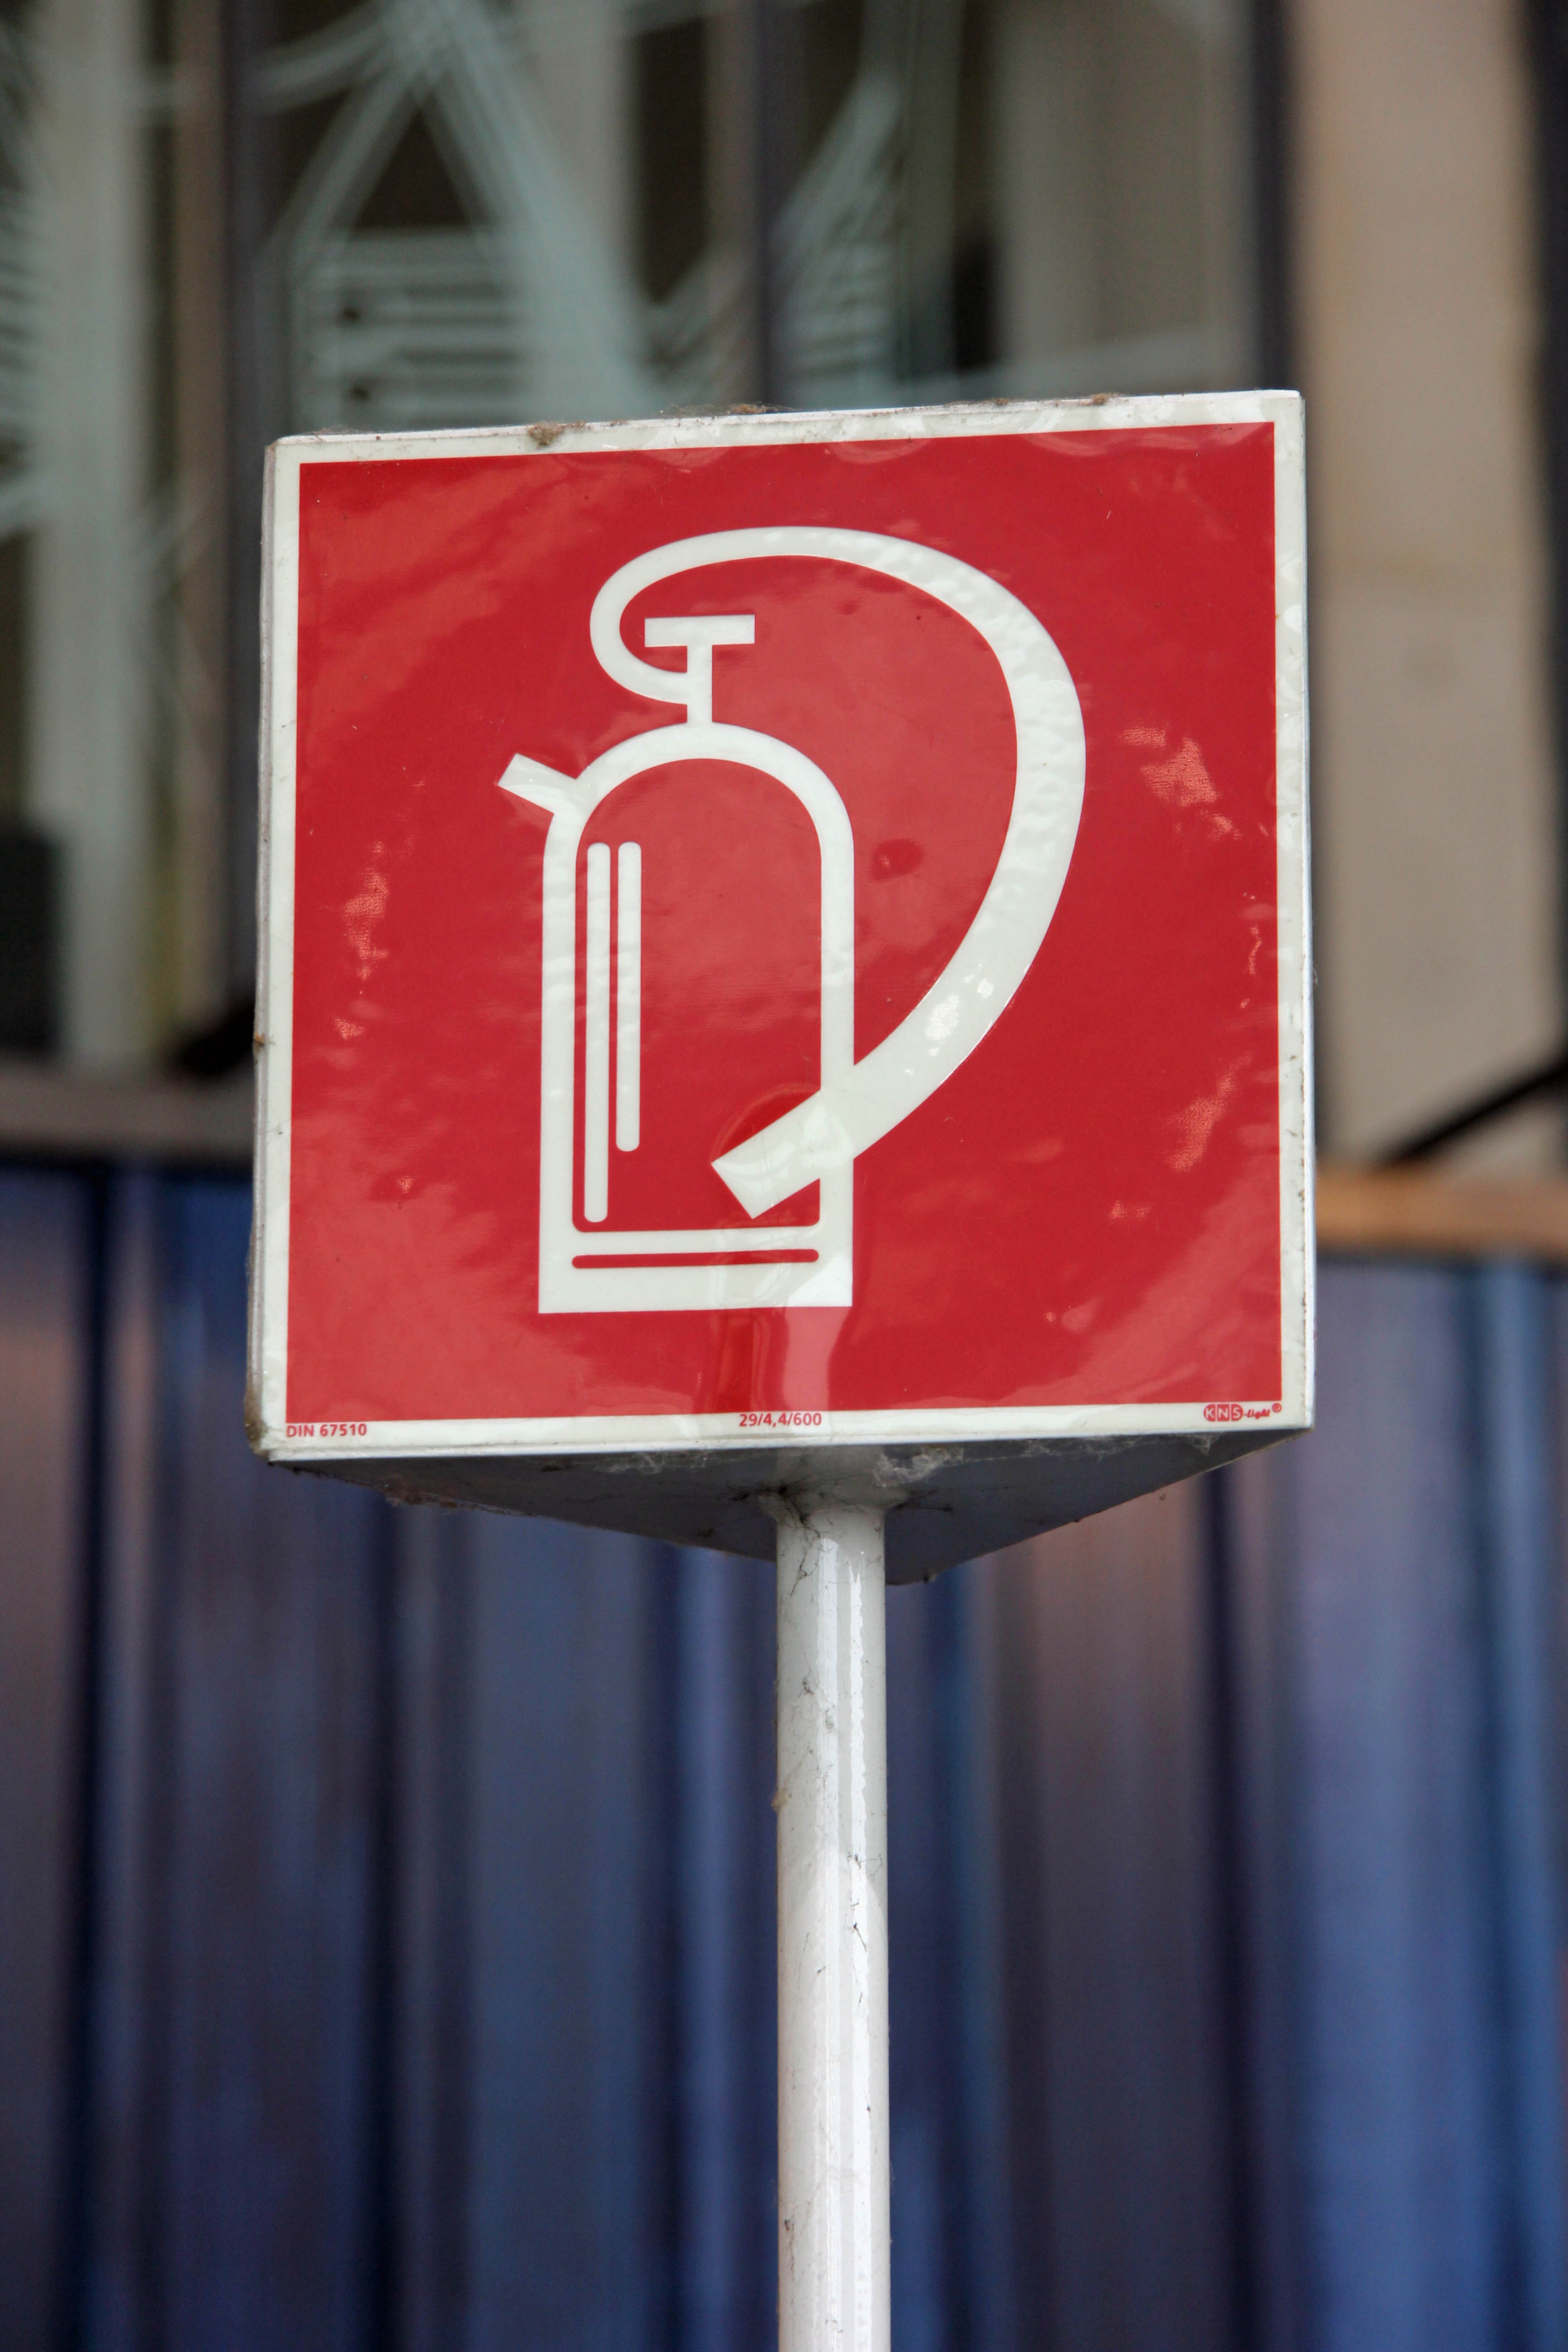 A Fire Extinguisher sign in the hangar space at Tempelhof Airport in Berlin